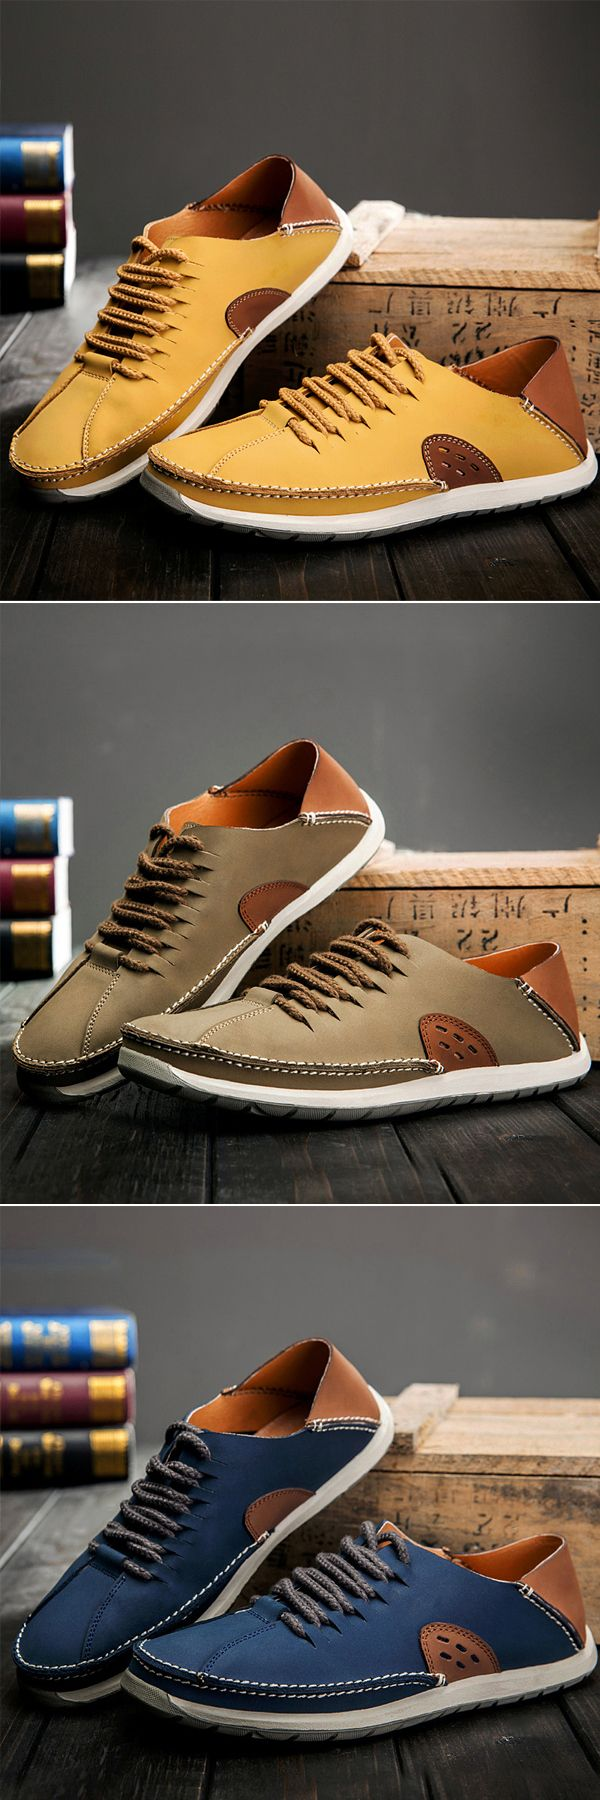 Men Stylish Pure Color Soft Non-slip Lace Up Outdoor Casual Leather Shoes http://www.99wtf.net/men/mens-fasion/dressing-styles-girls-love-guys-shirt-included/